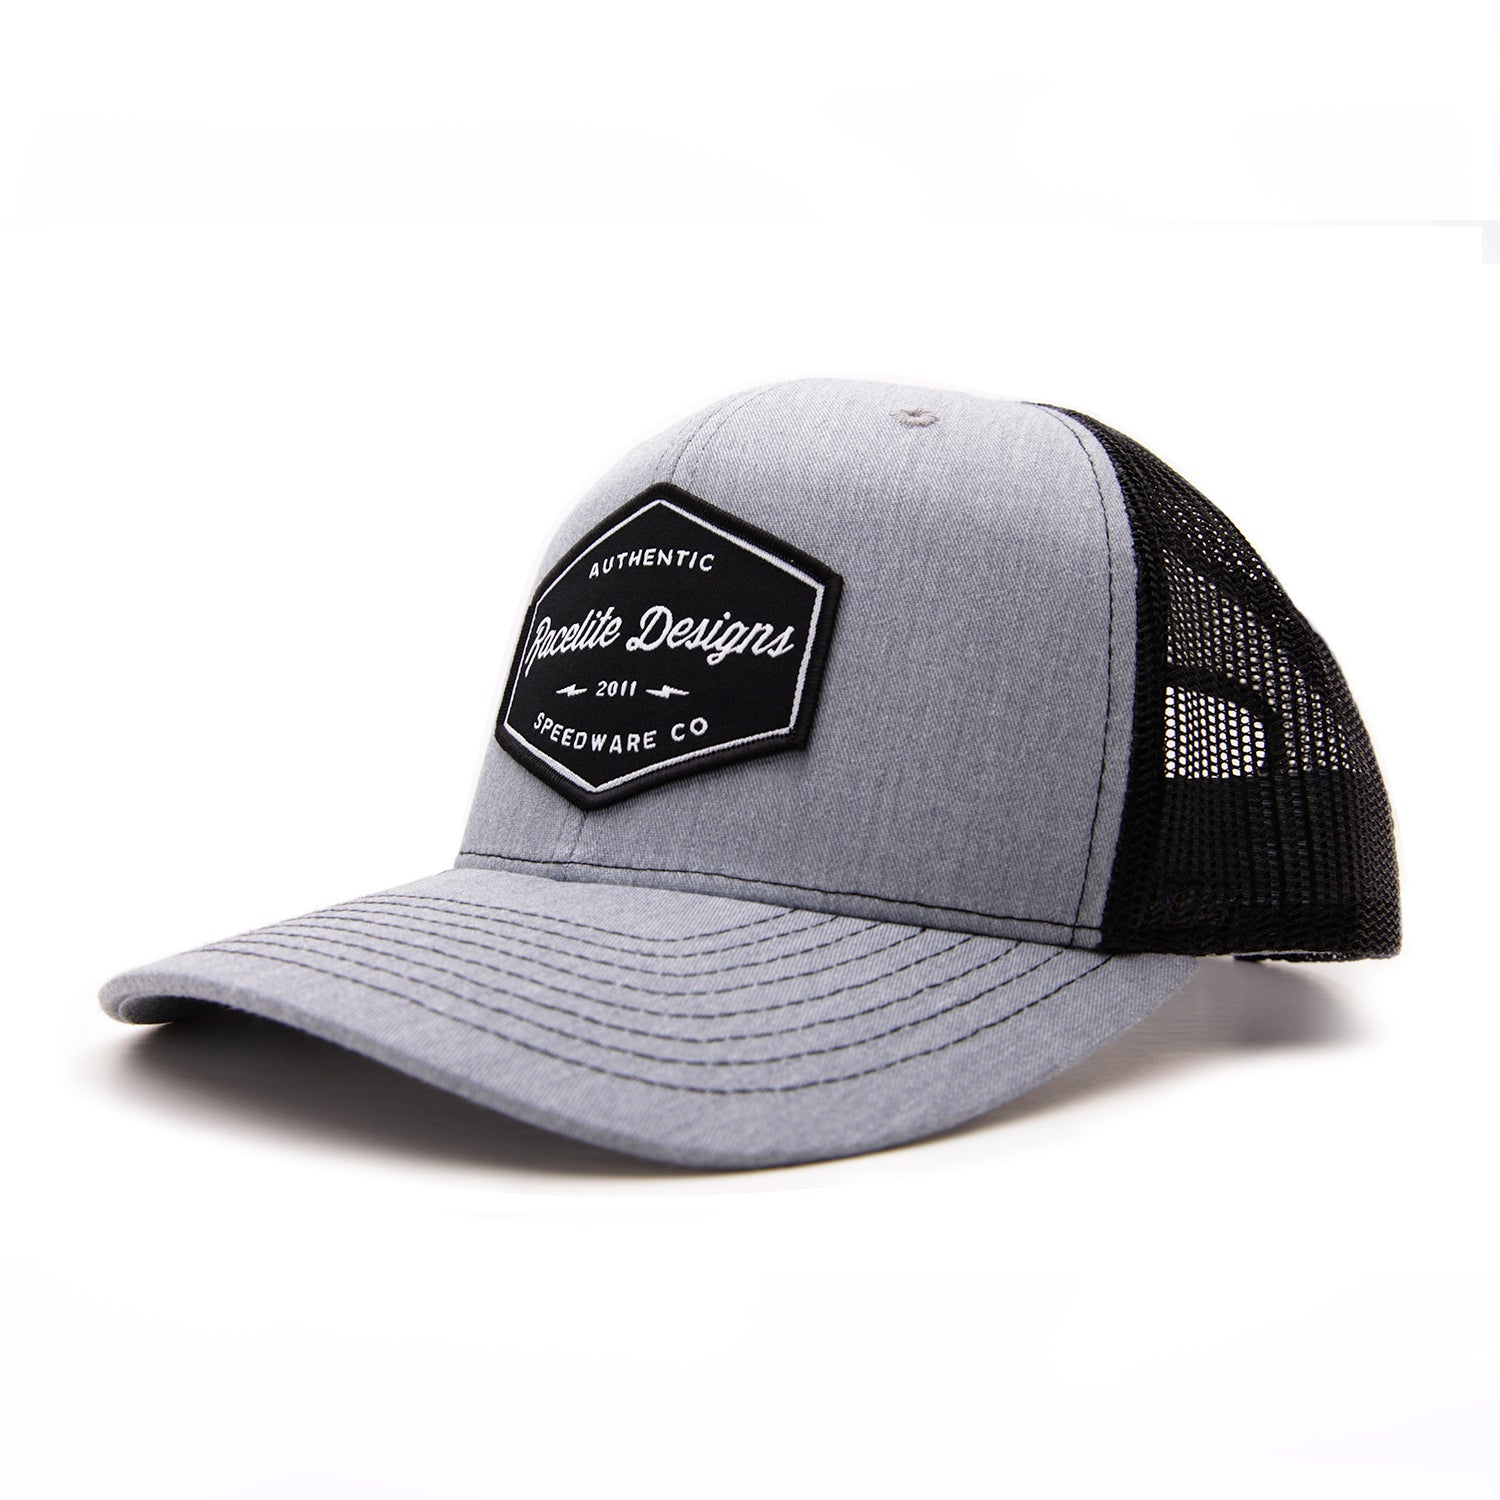 Racelite Designs Authentic Speedware Heather Grey Woven Patch 6 Panel Hat Side View